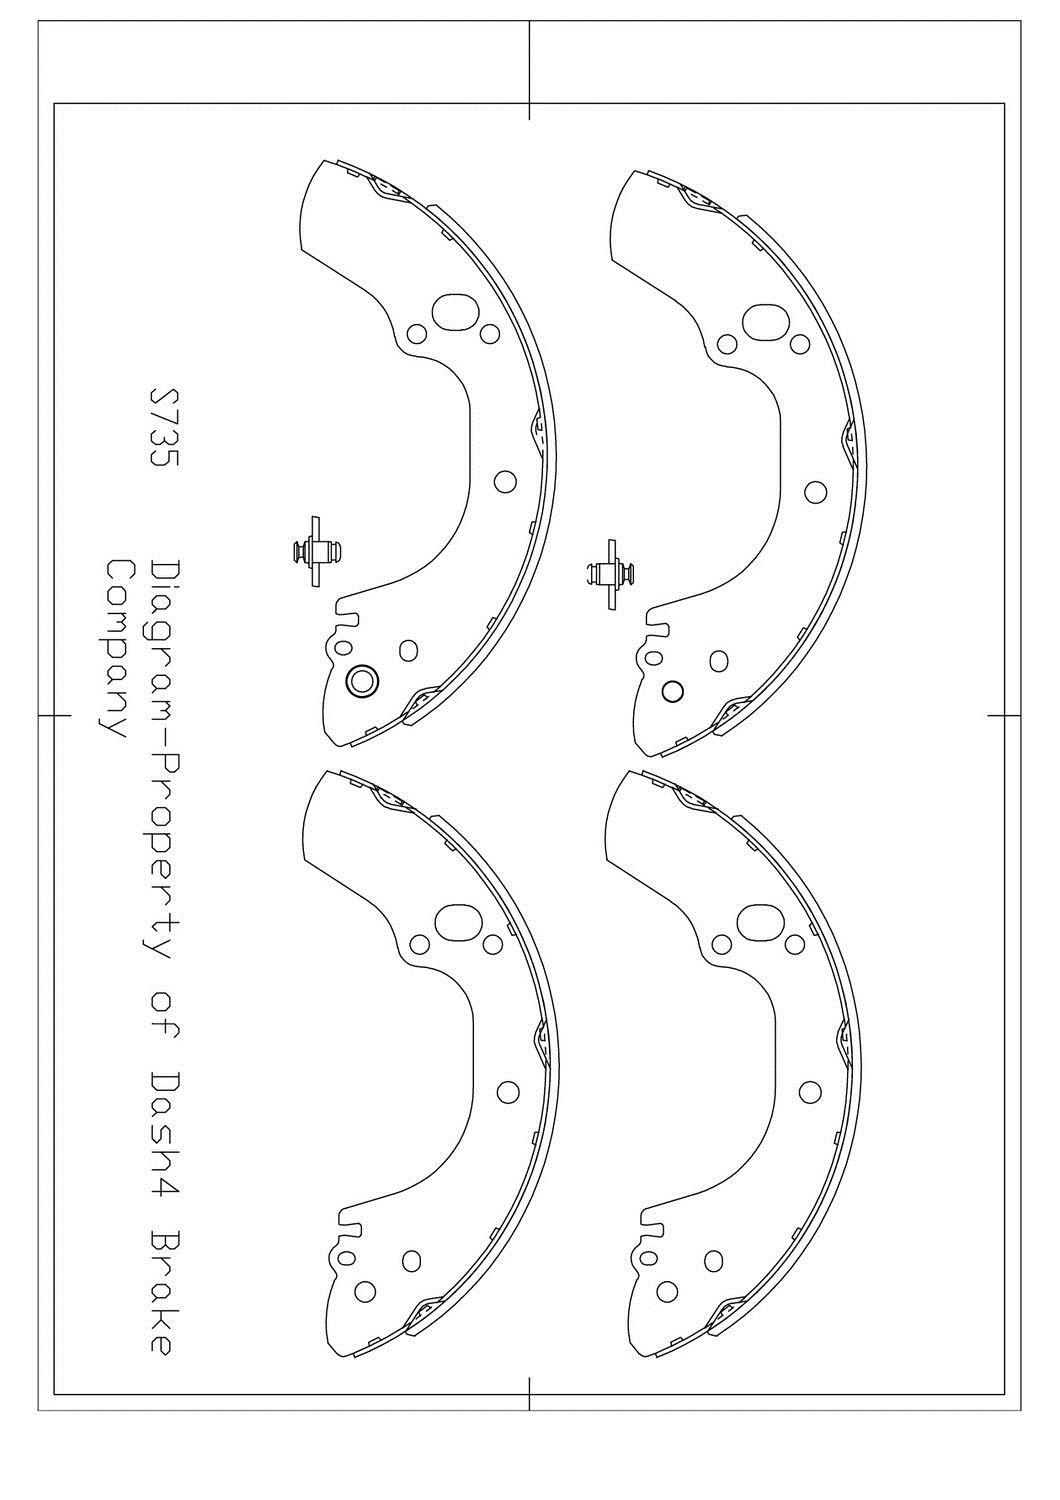 Hqdefault furthermore  furthermore Pm also New Rear Brake Shoes For Mitsubishi Triton Ml additionally O. on 2002 isuzu rodeo rear brake drums